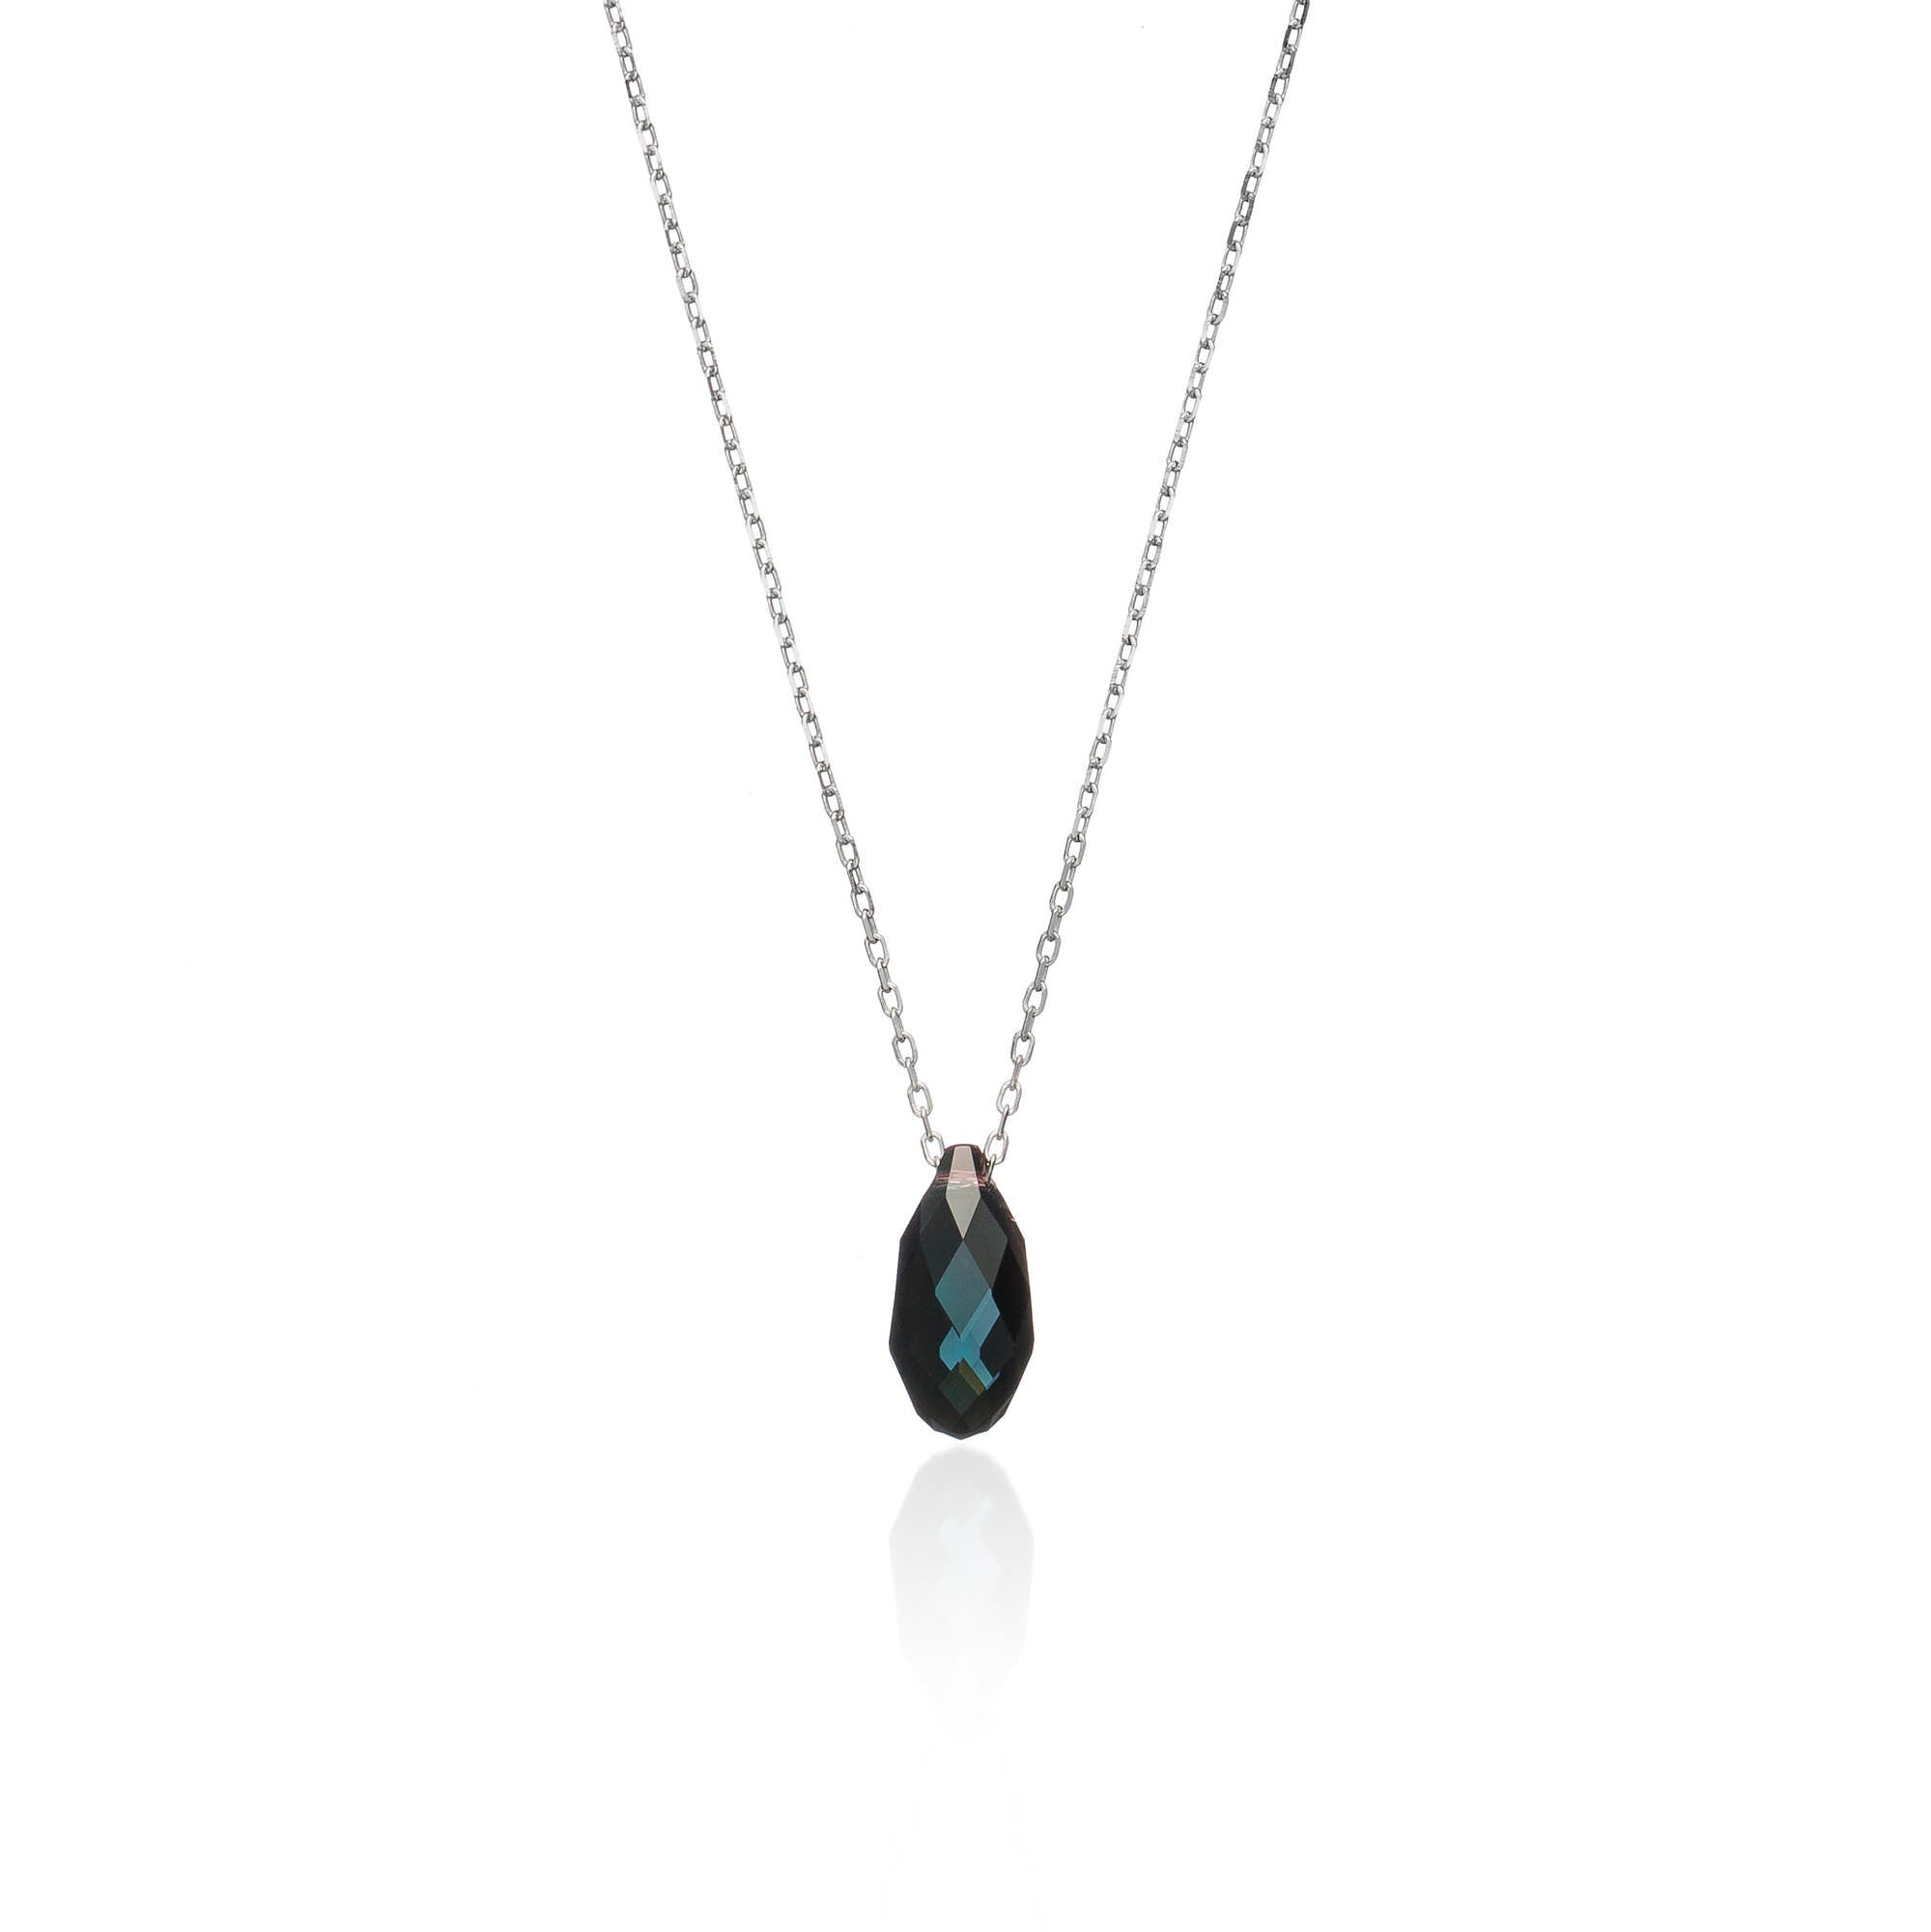 Teal Crystal Drop Necklace